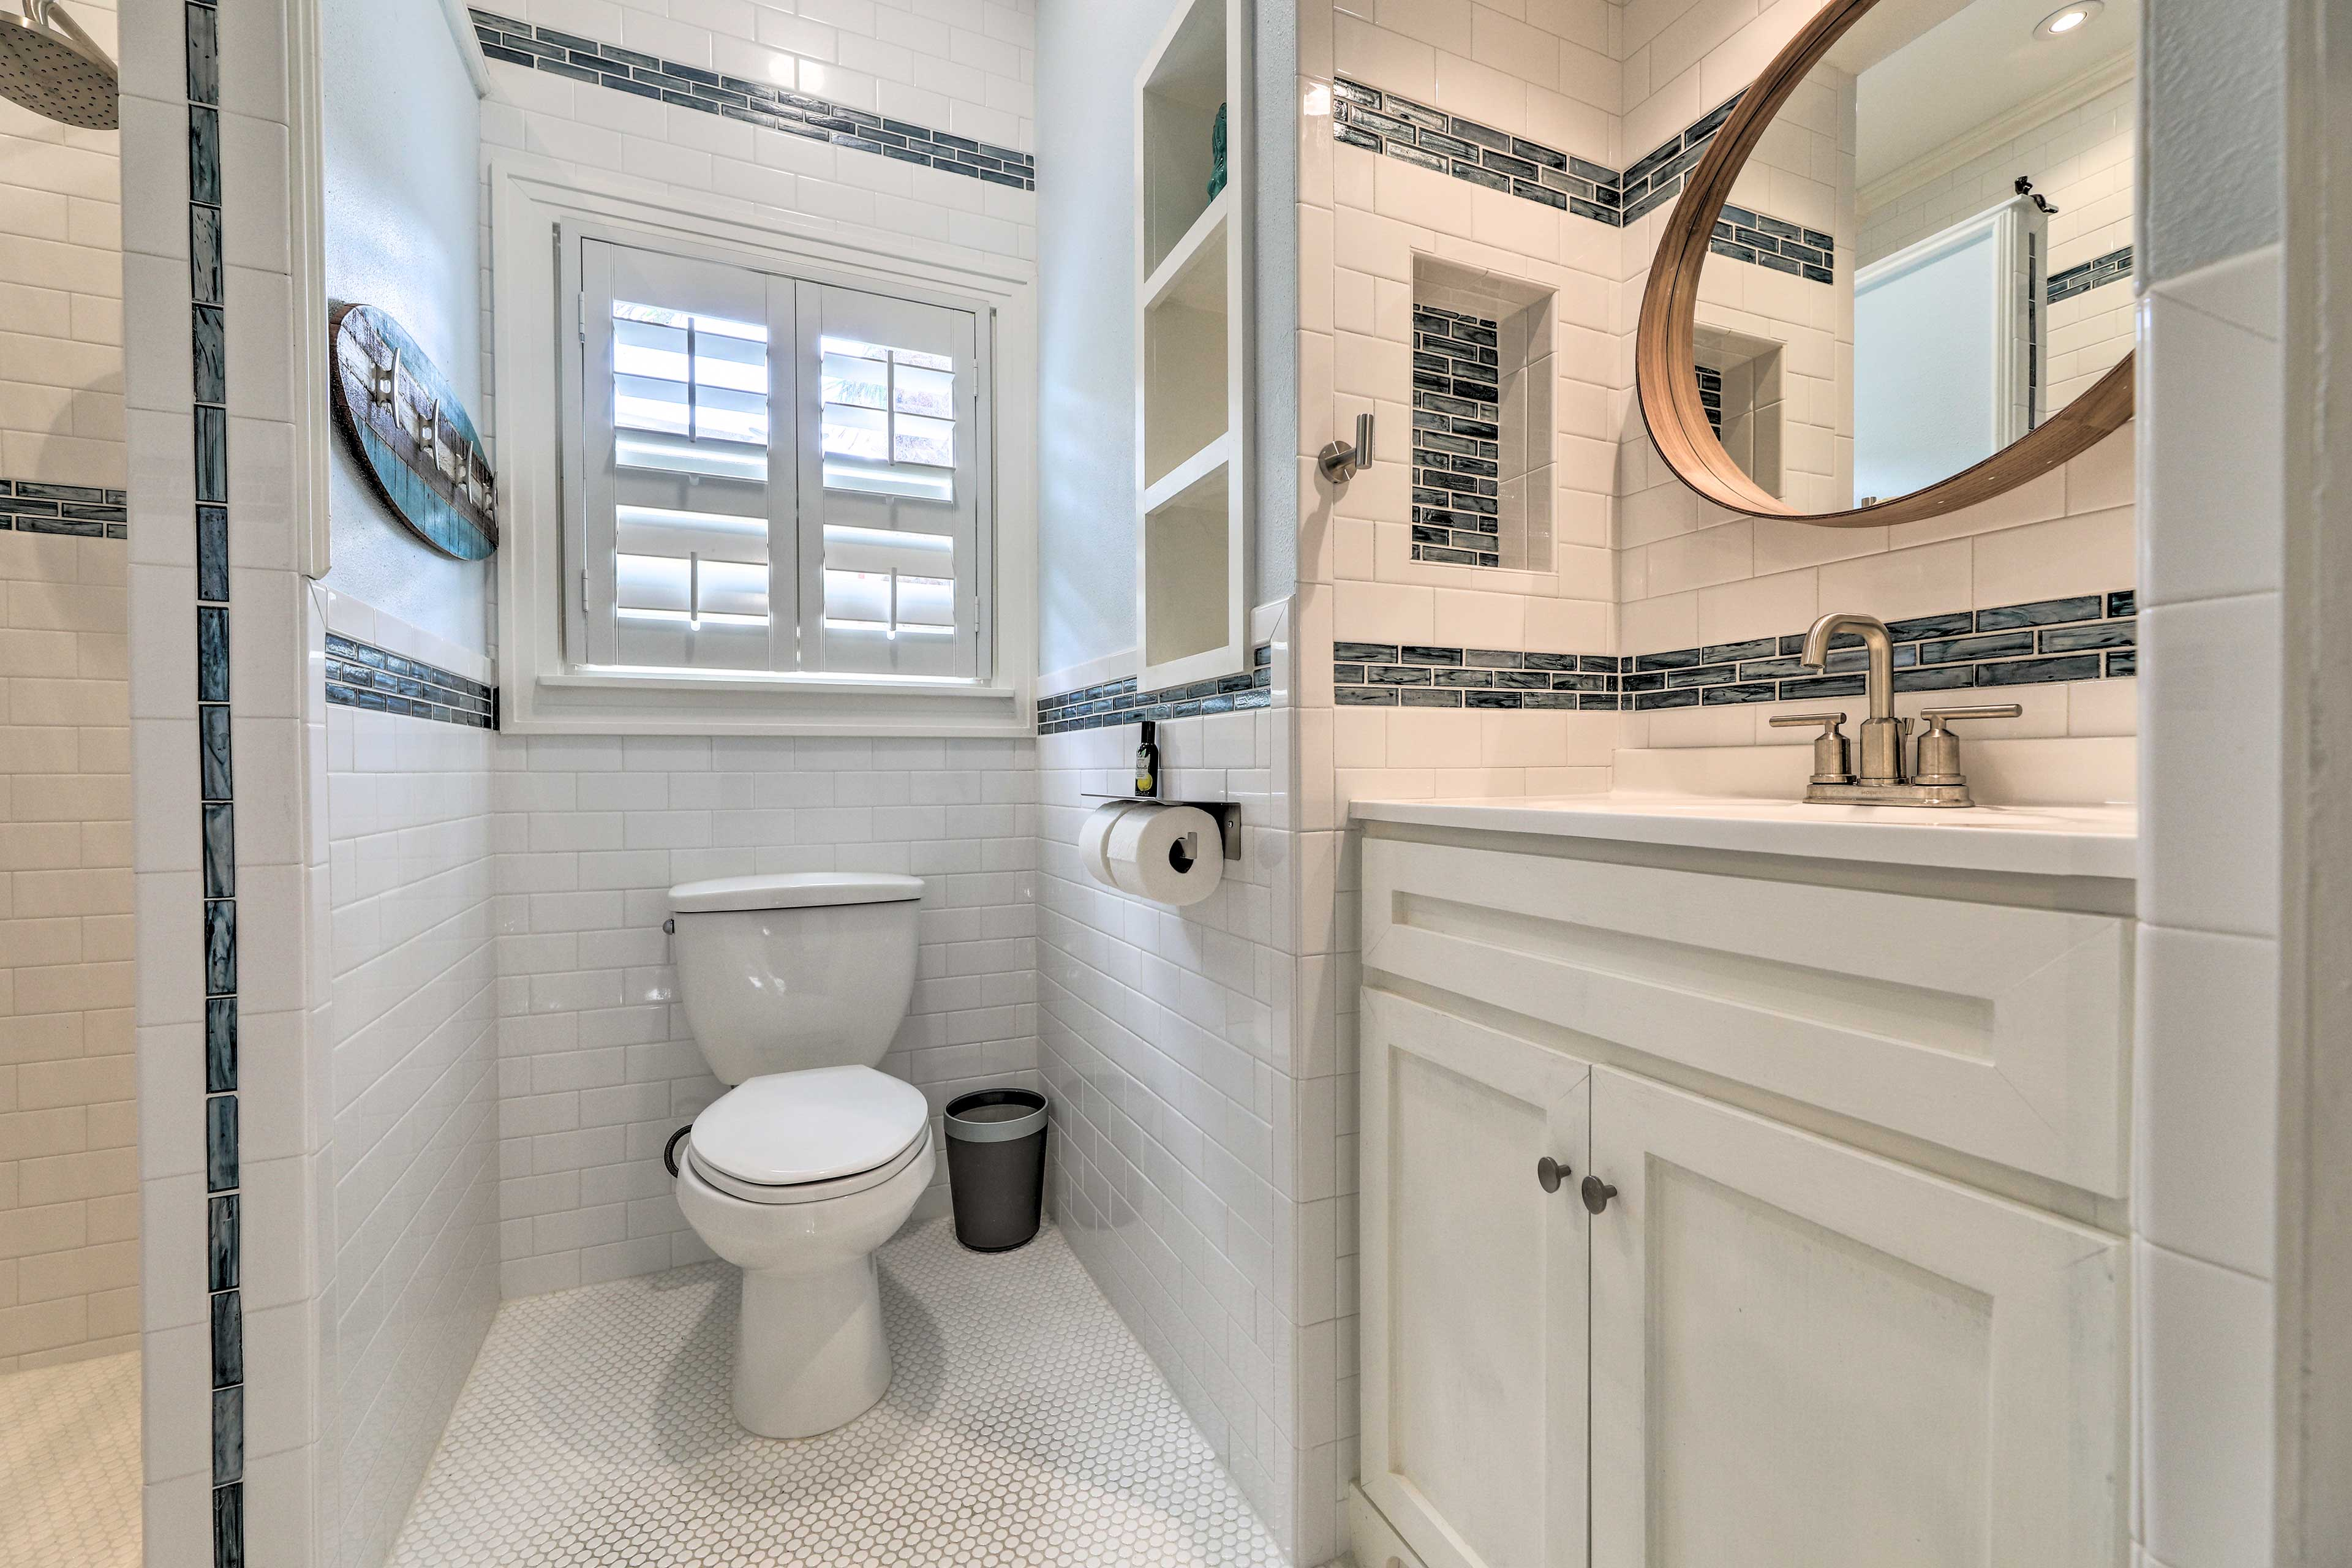 There are 2 bathrooms in this lovely home.